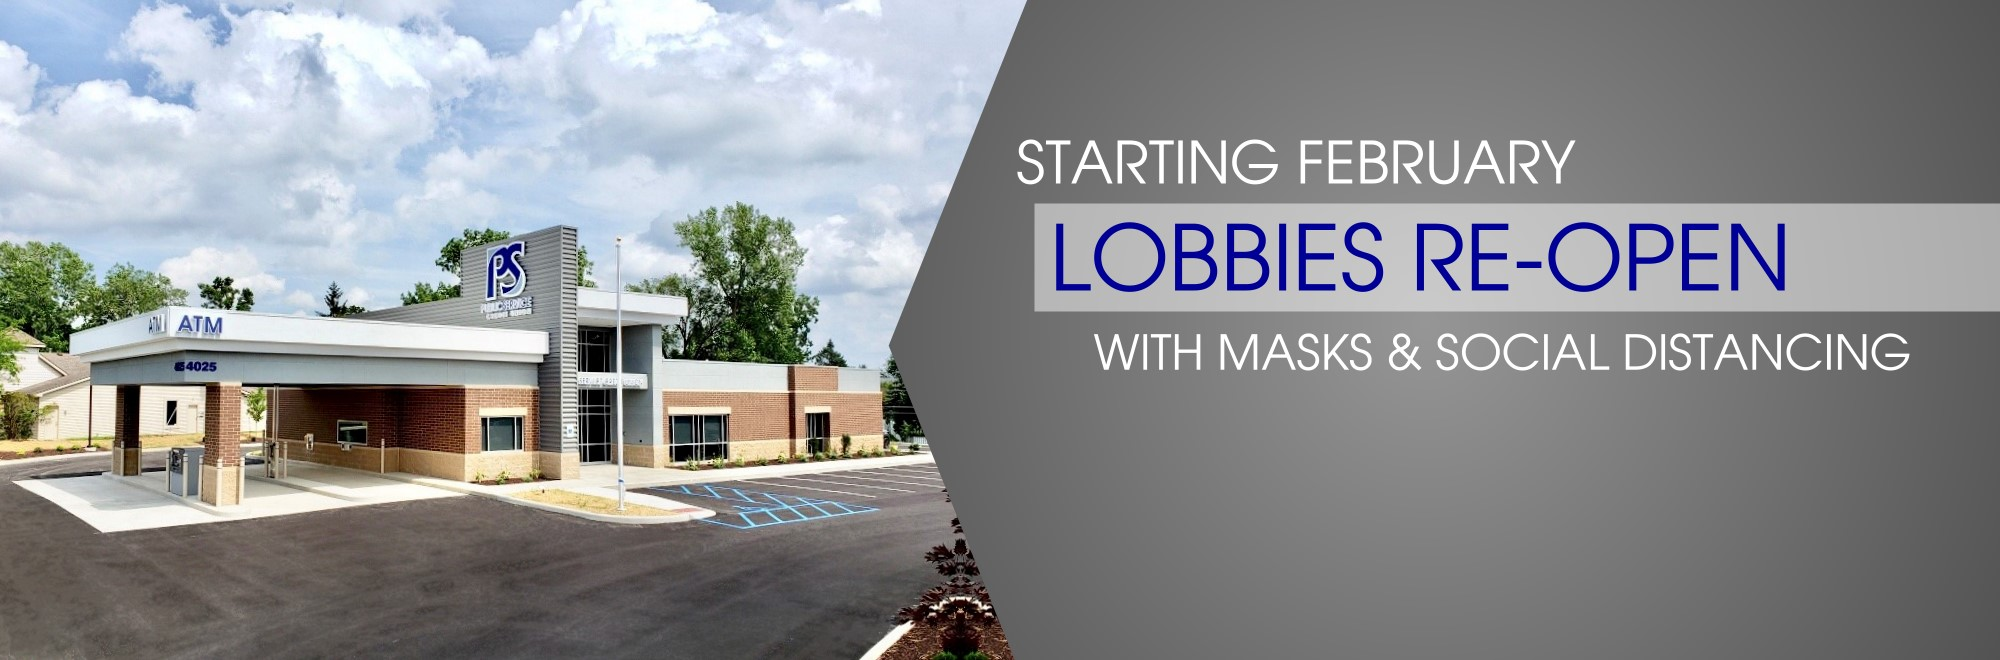 Starting February Lobbies Reopening with Masks and Social Distancing